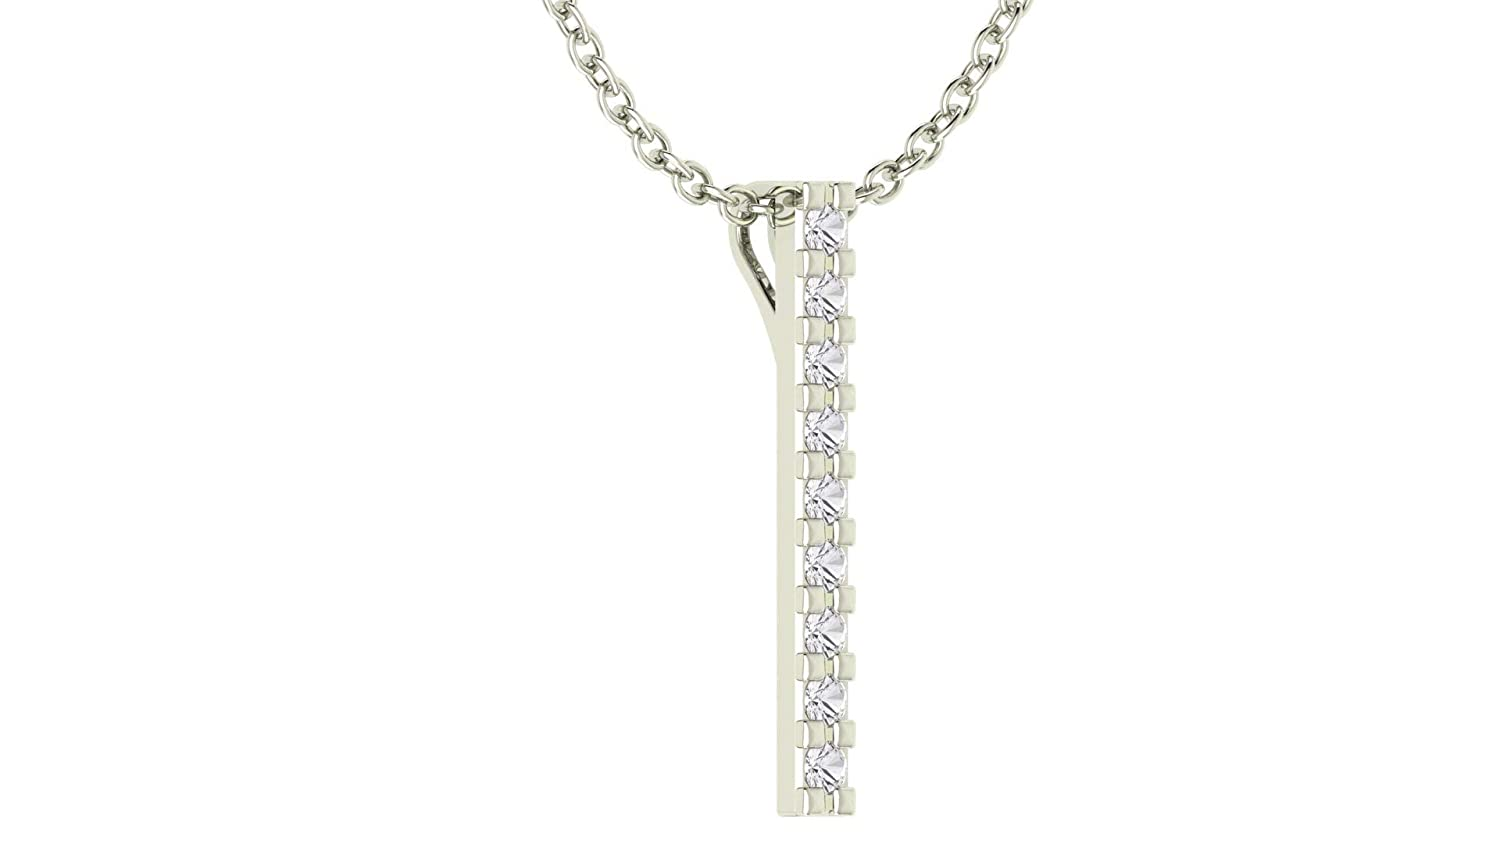 Solid Sterling Silver 3mm Perfectly Linear Natural White Topaz with 17.5 inch Anchor Chain for Women